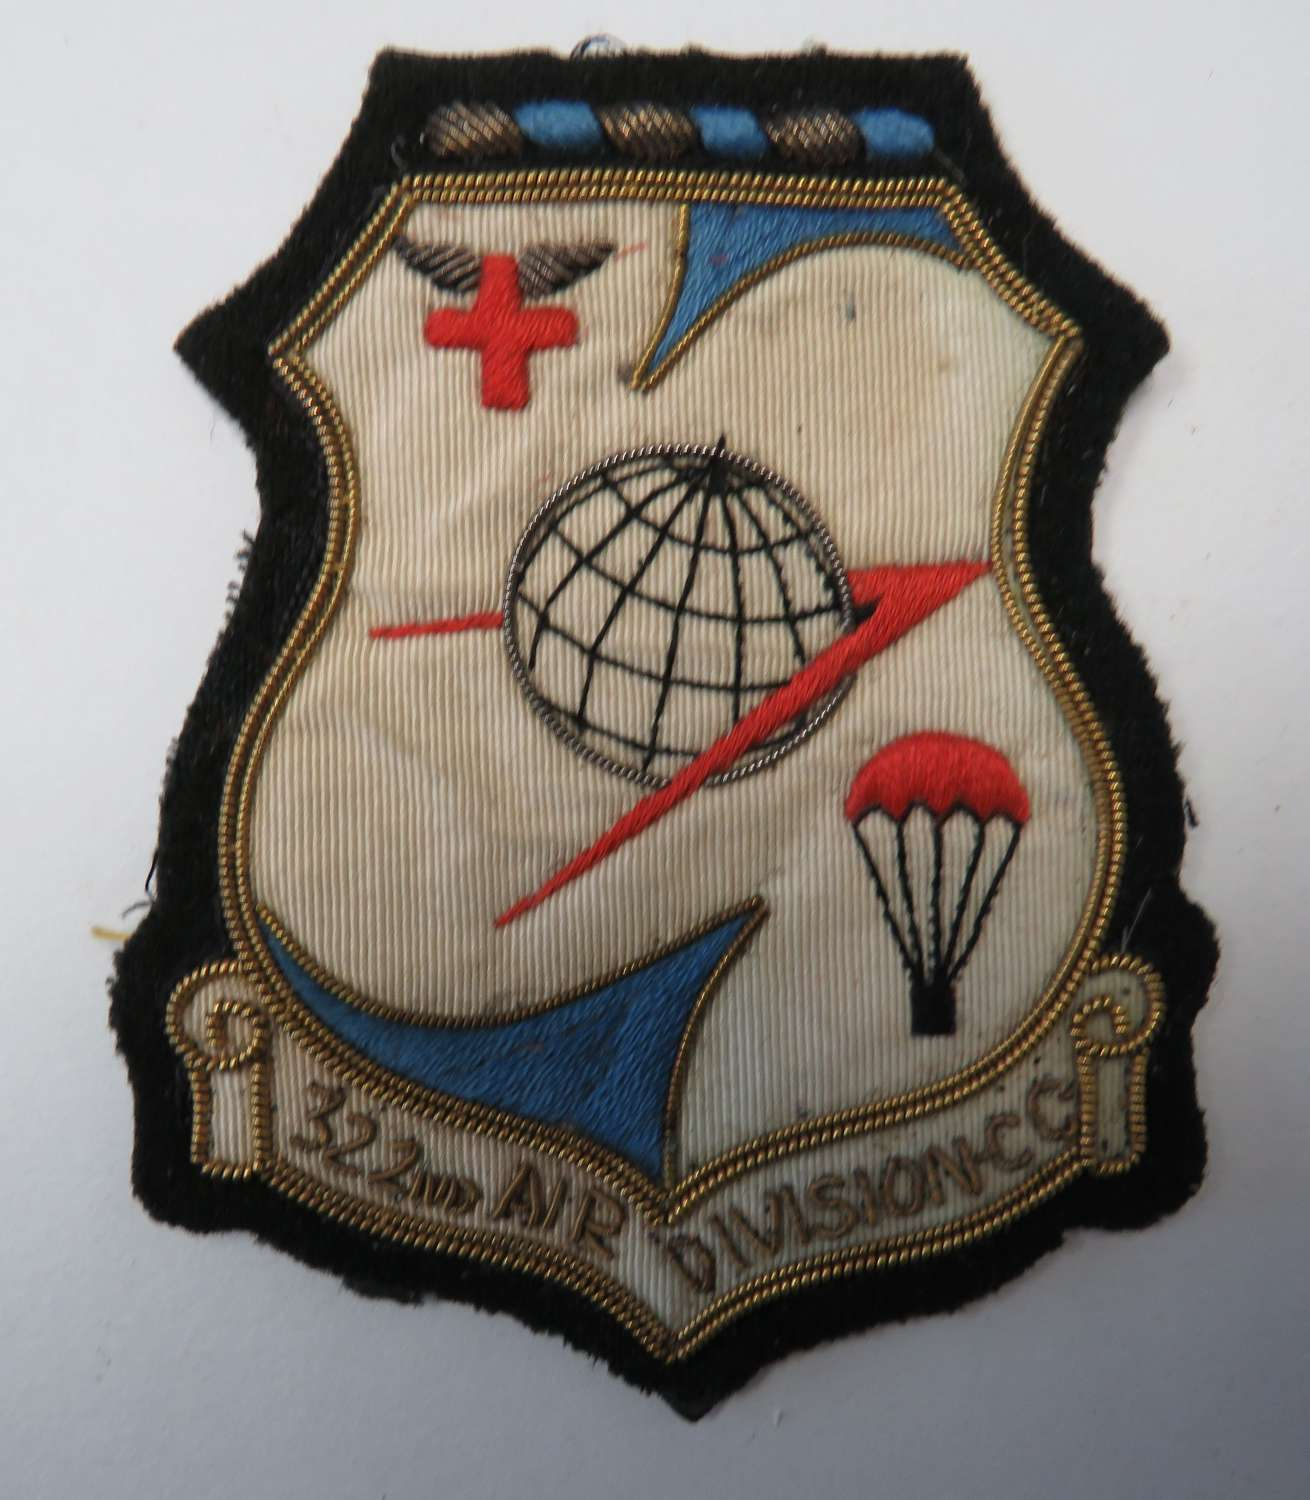 322nd Air Division Formation Badge